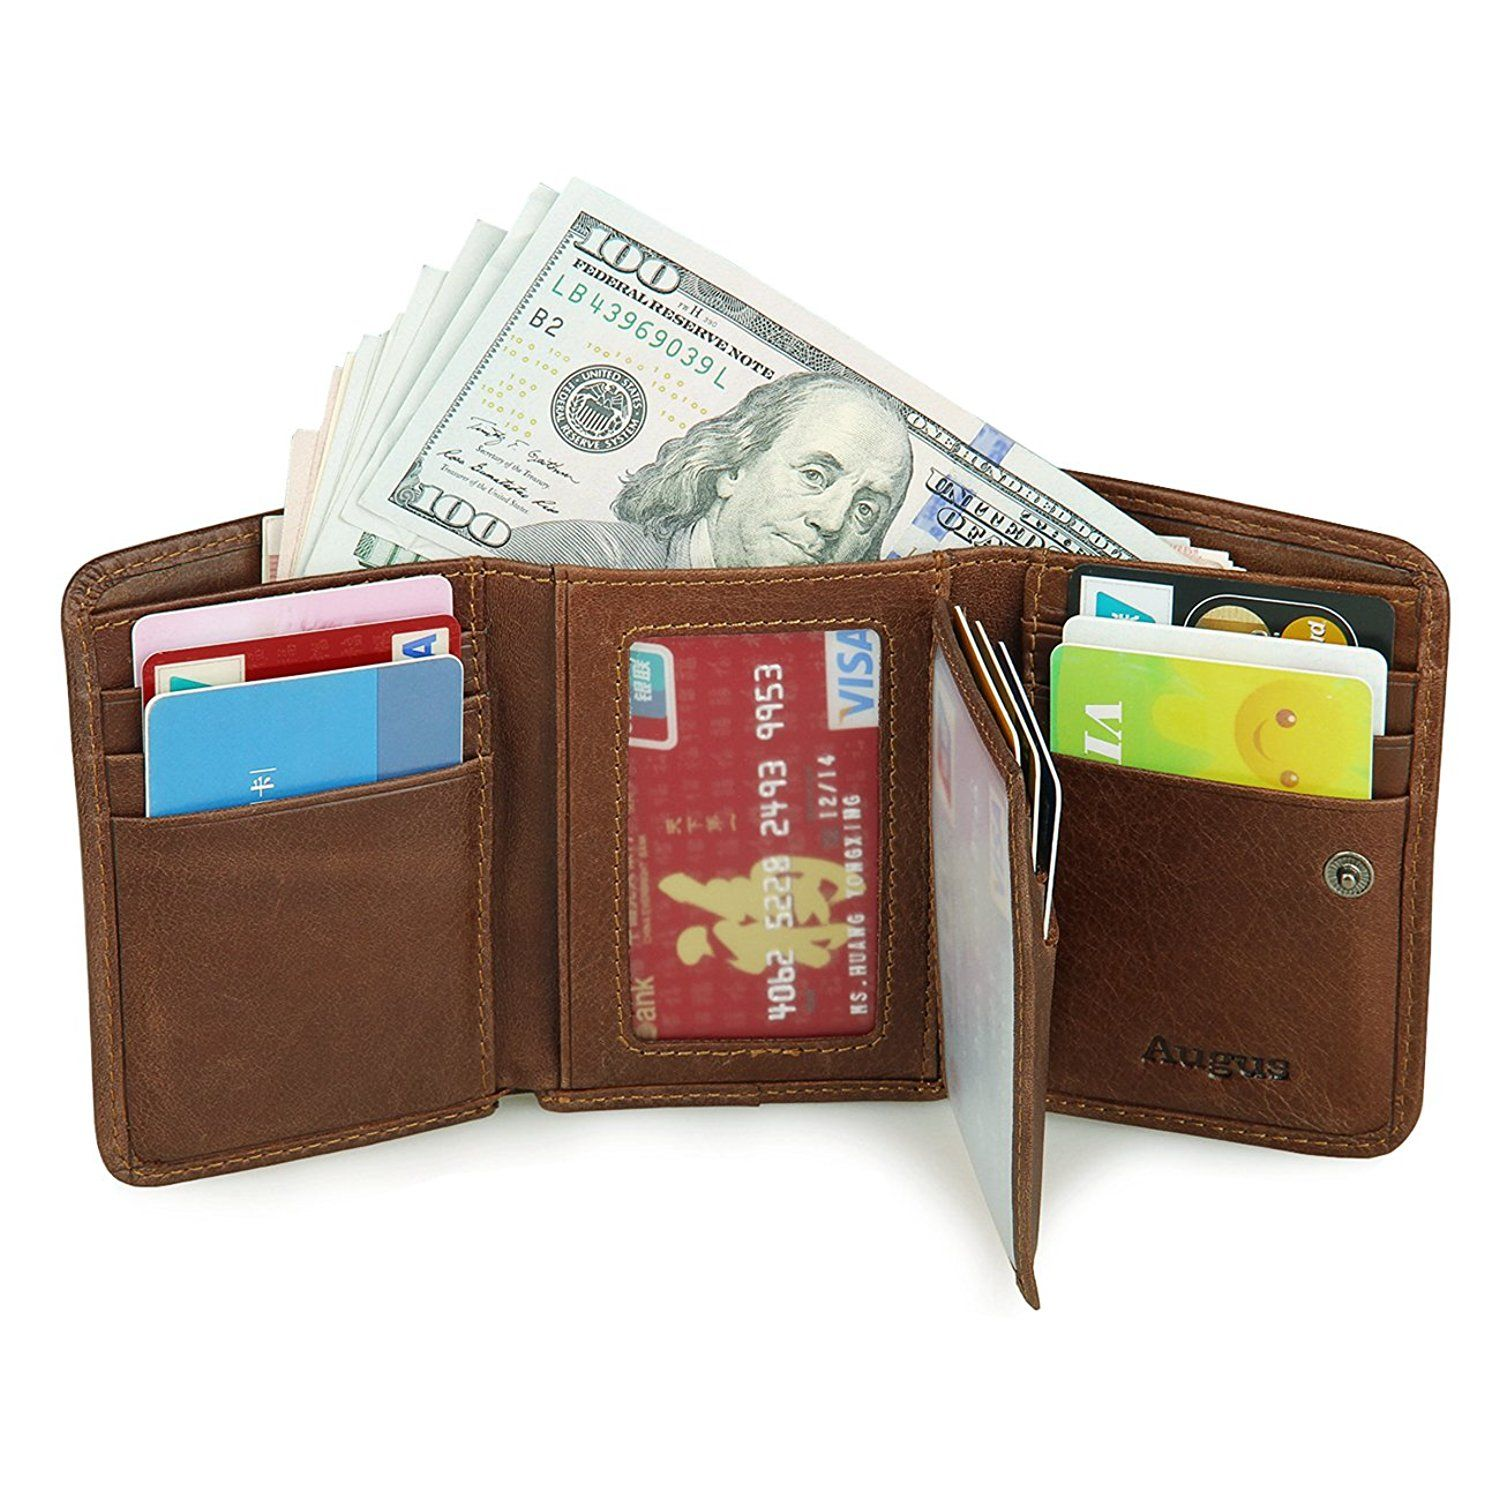 Augus leather mens rfid trifold wallet with double id